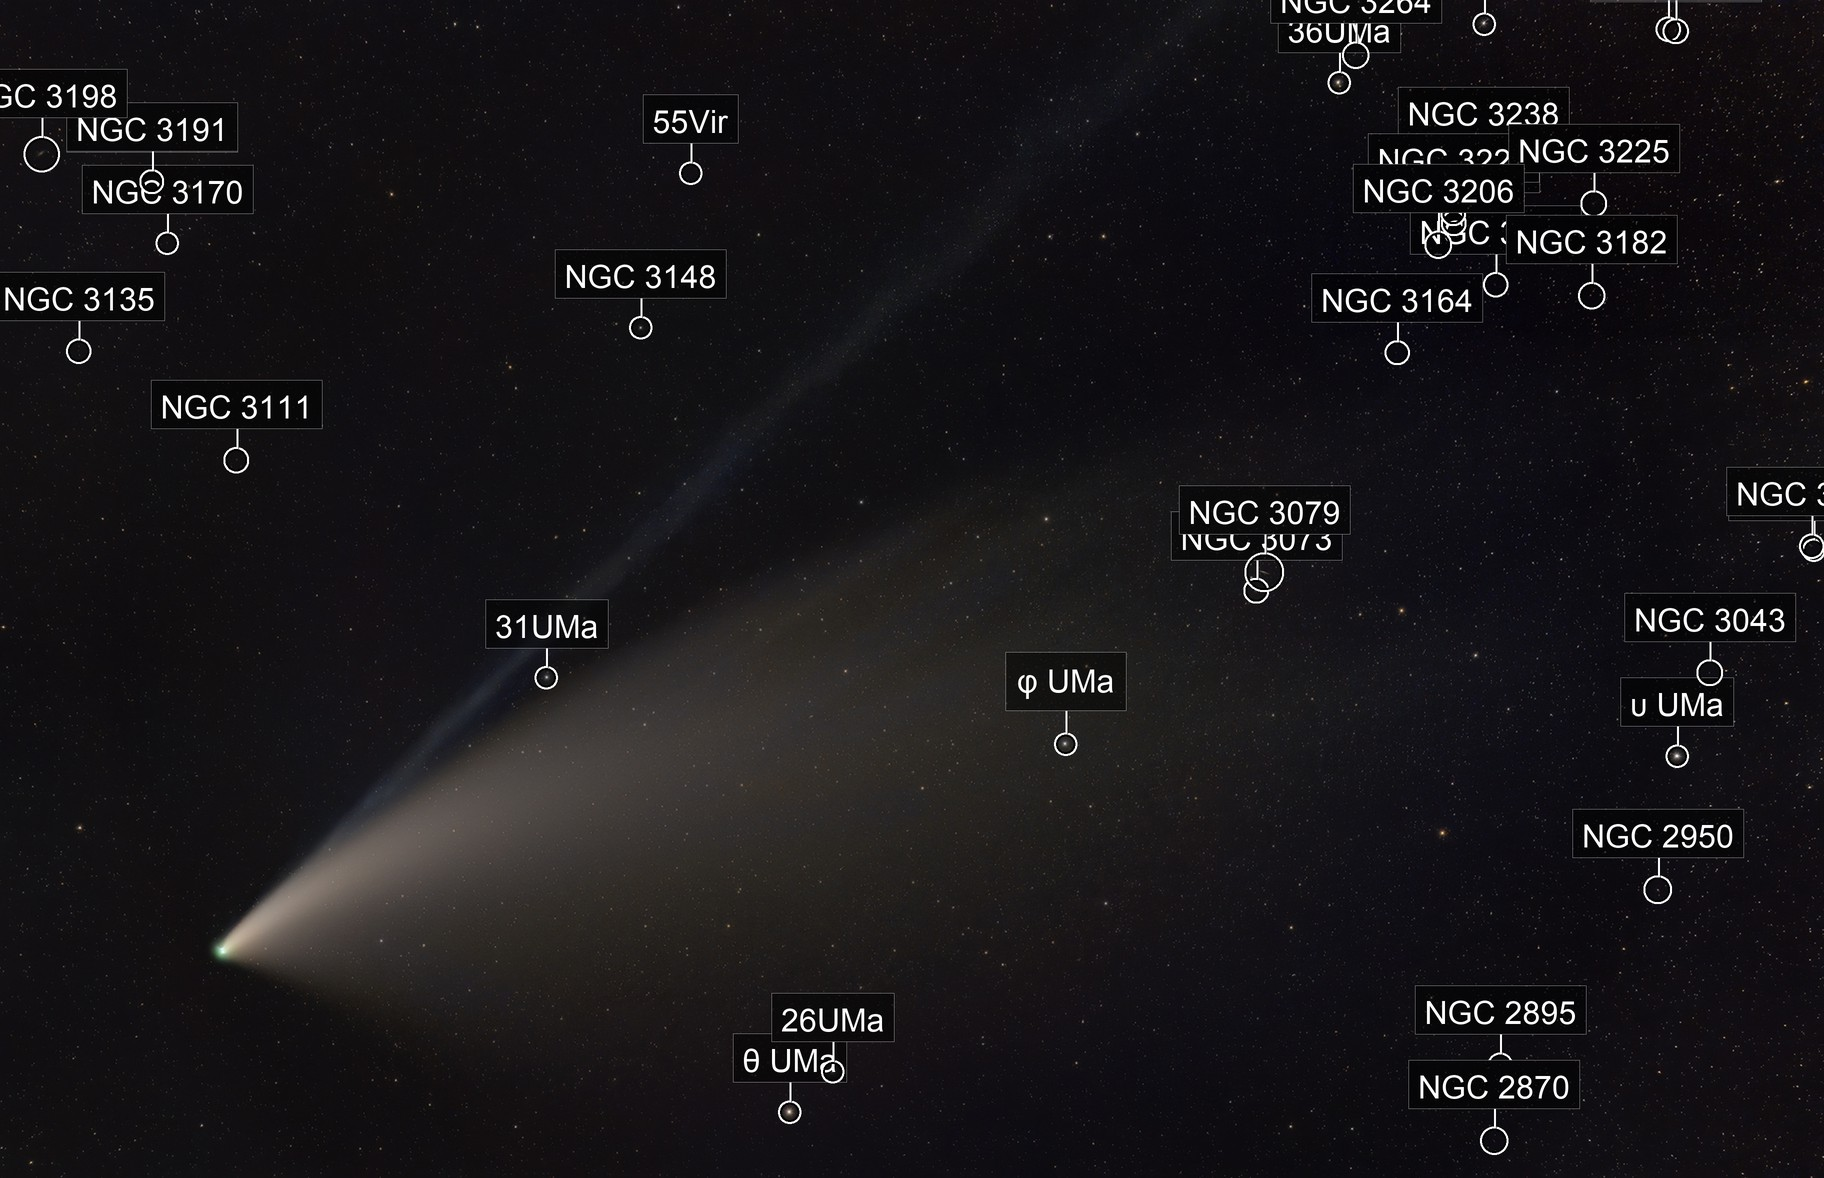 Comet C/2020 F3 - Neowise on July 20th, 2020